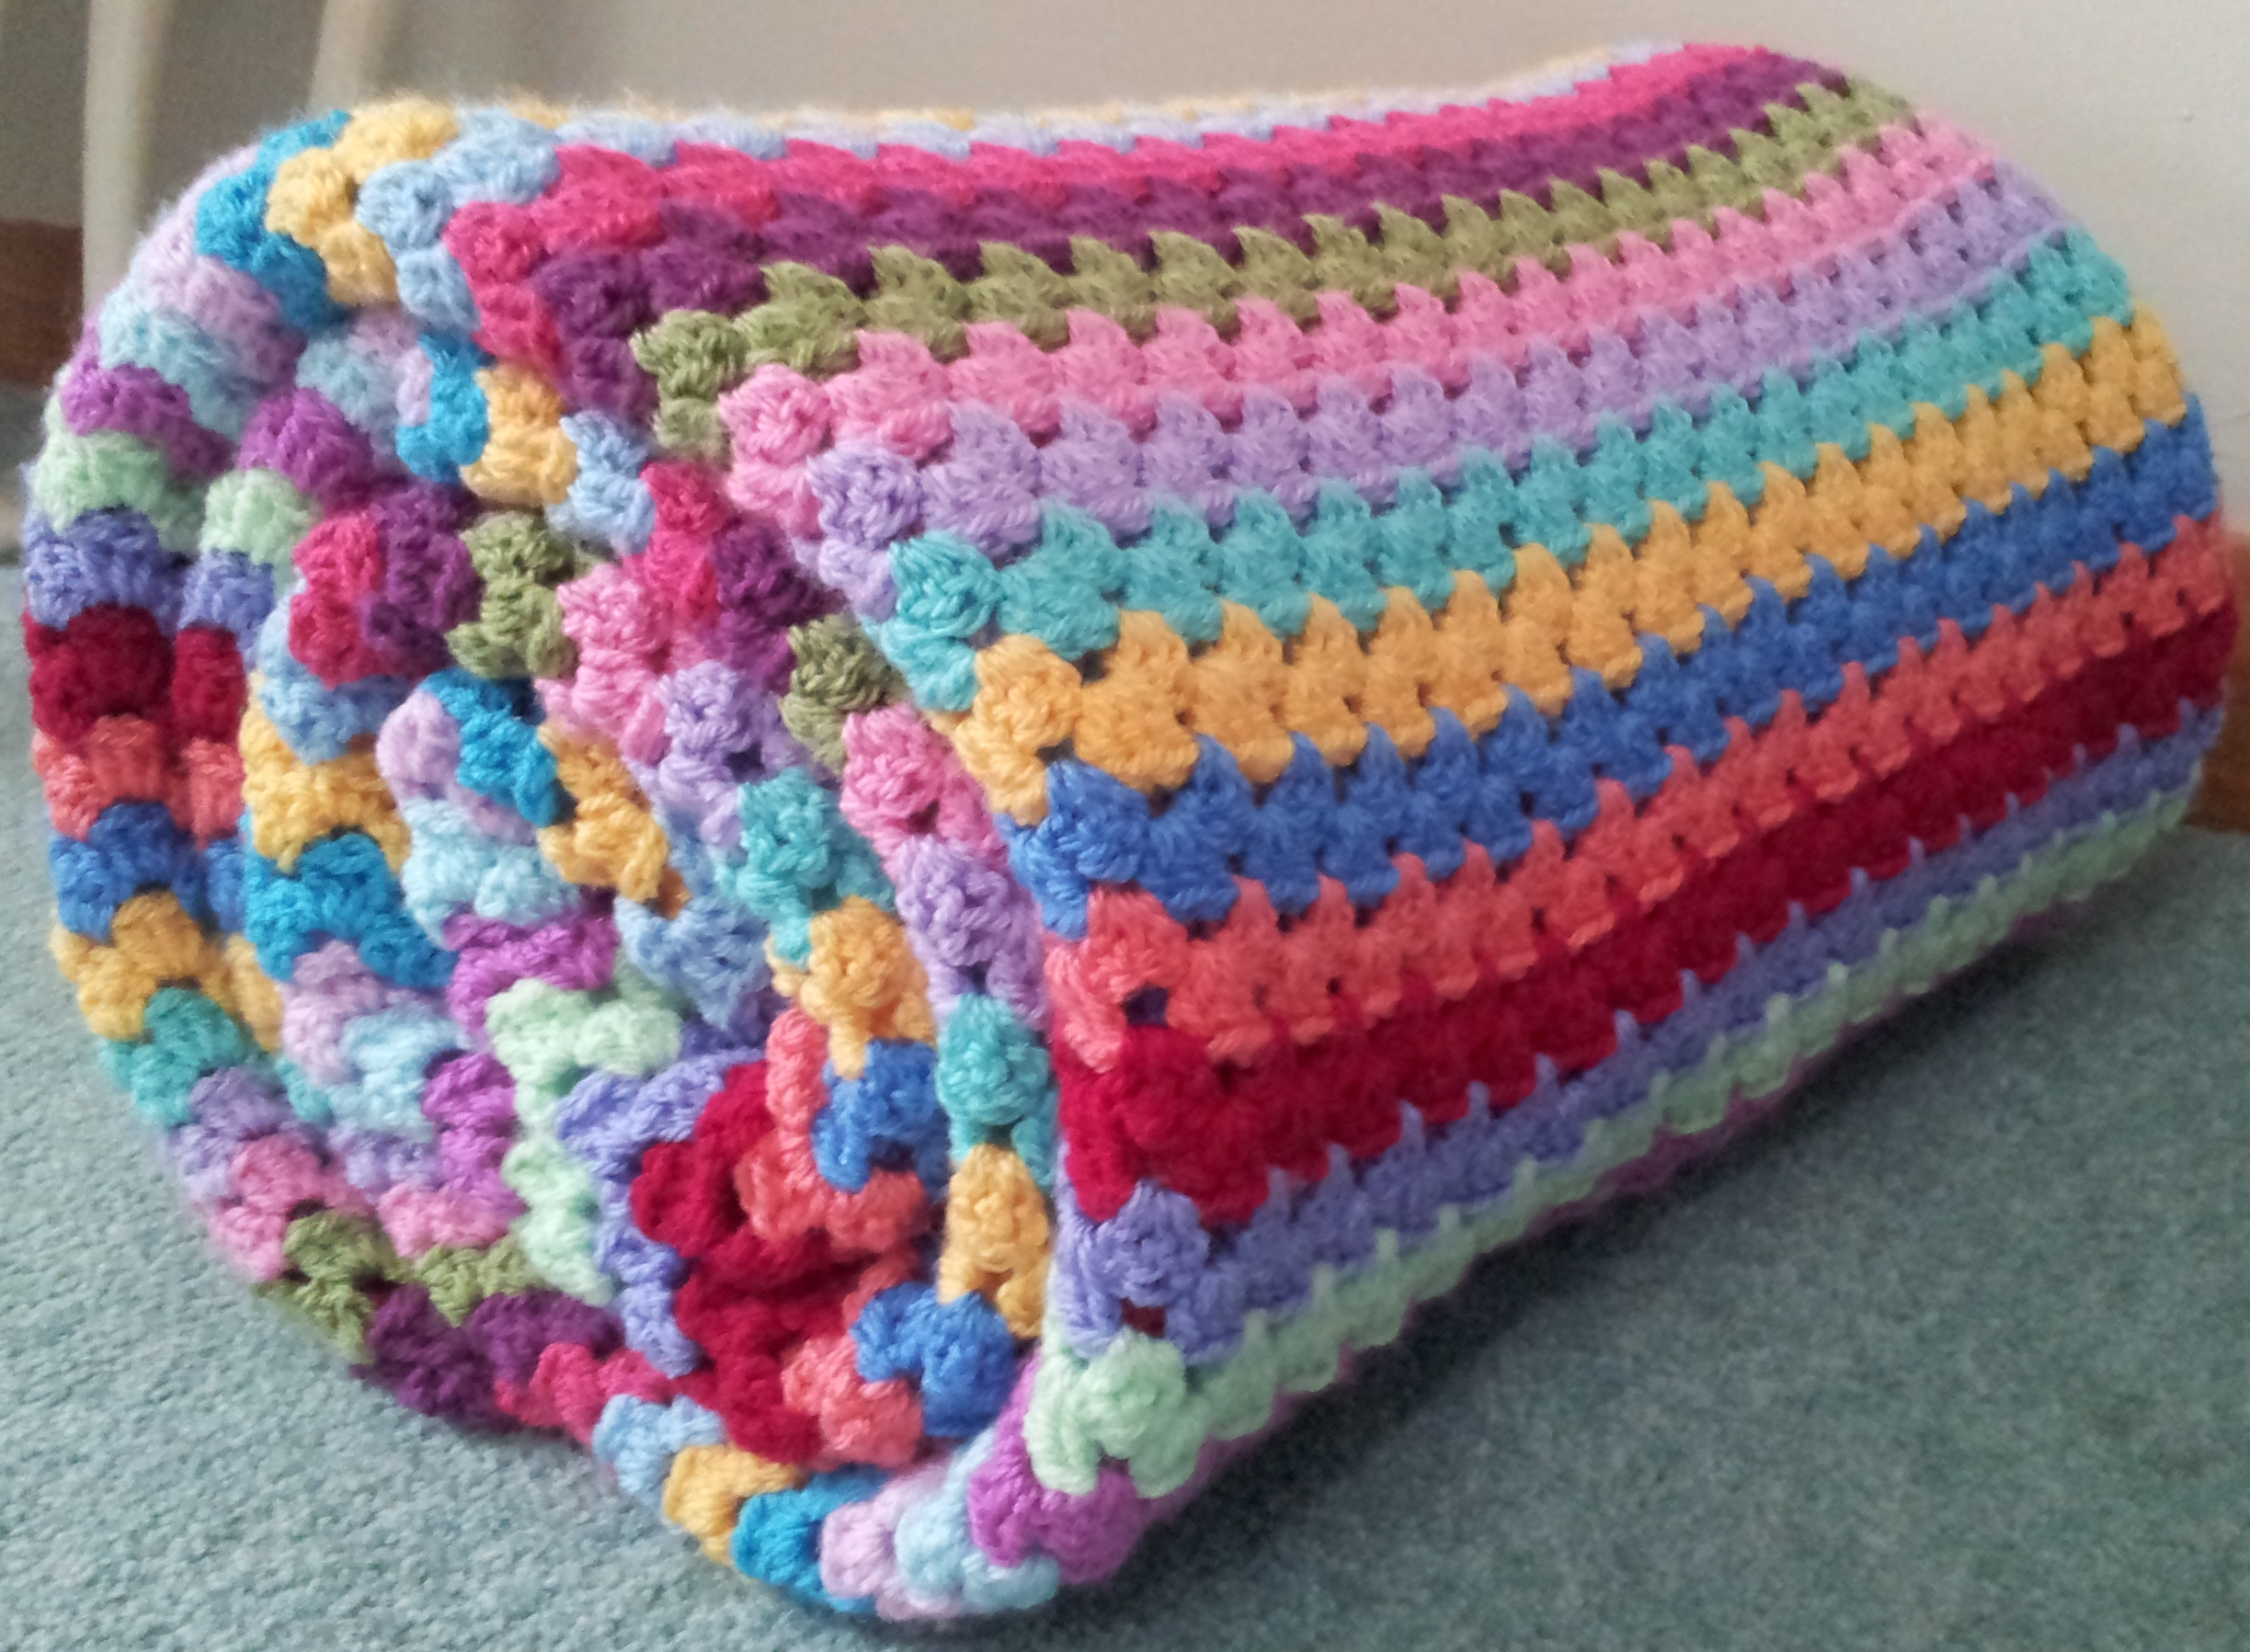 Granny Stripes Crochet Baby Blanket Pattern - Hot Girls ...